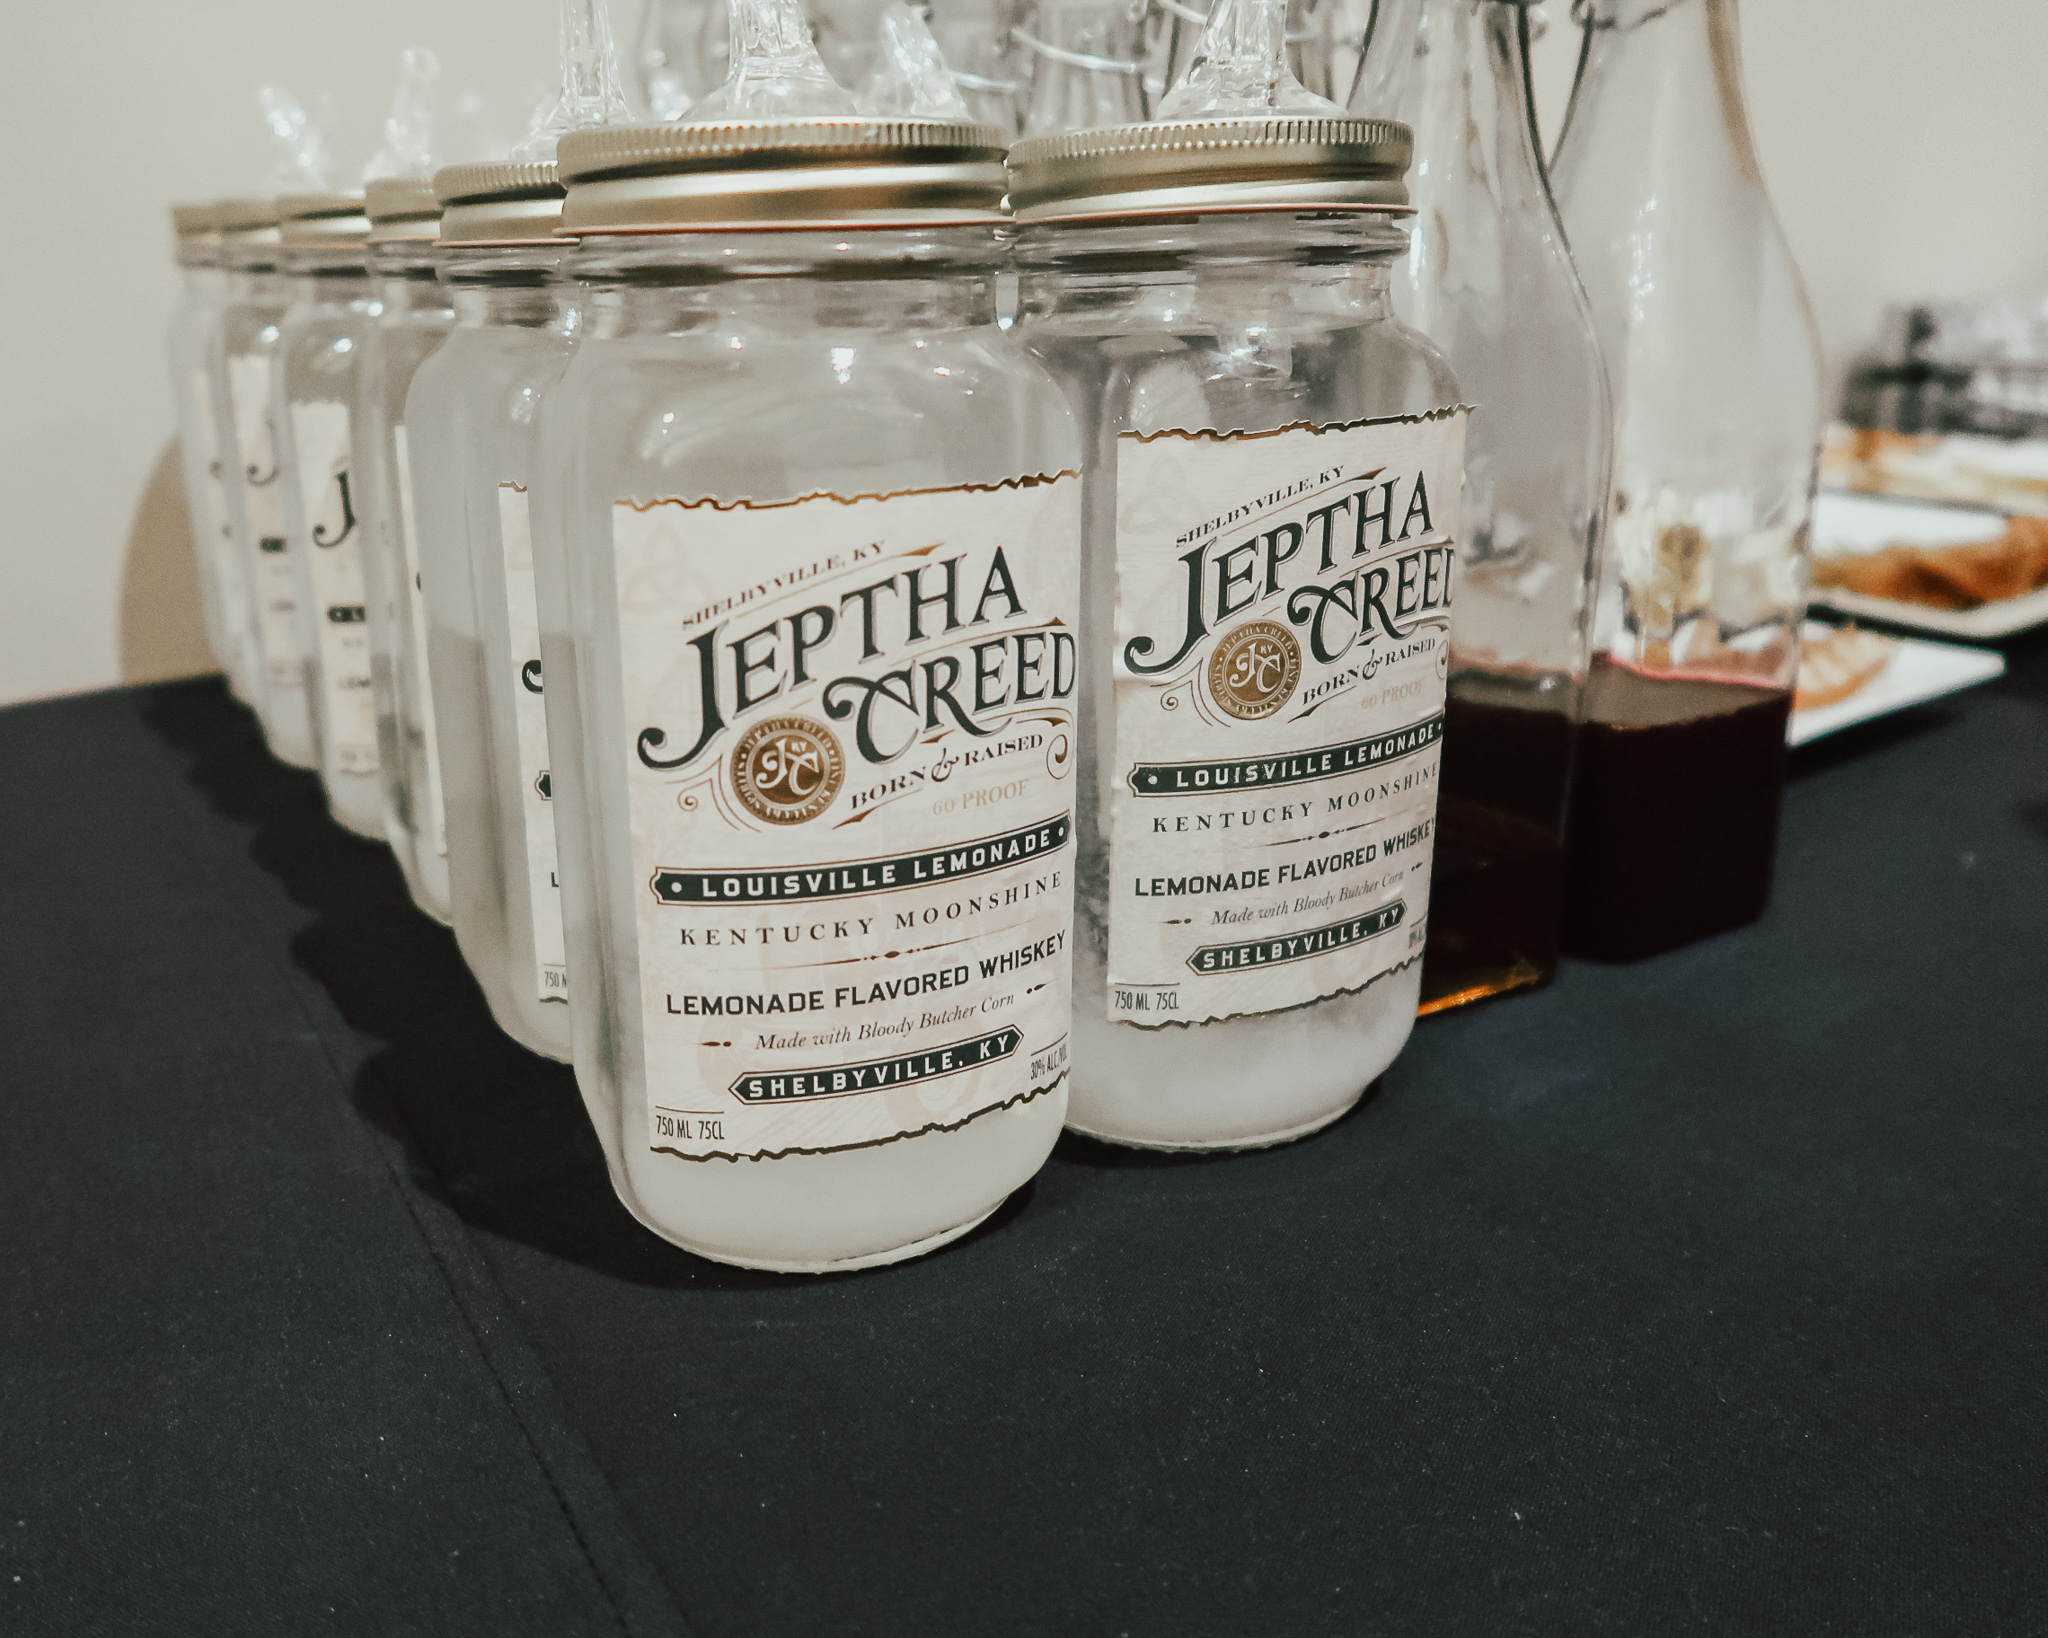 Cocktail-and-Flavor-Pairing-Class-Jeptha-Creed-Kentucky-30.jpg